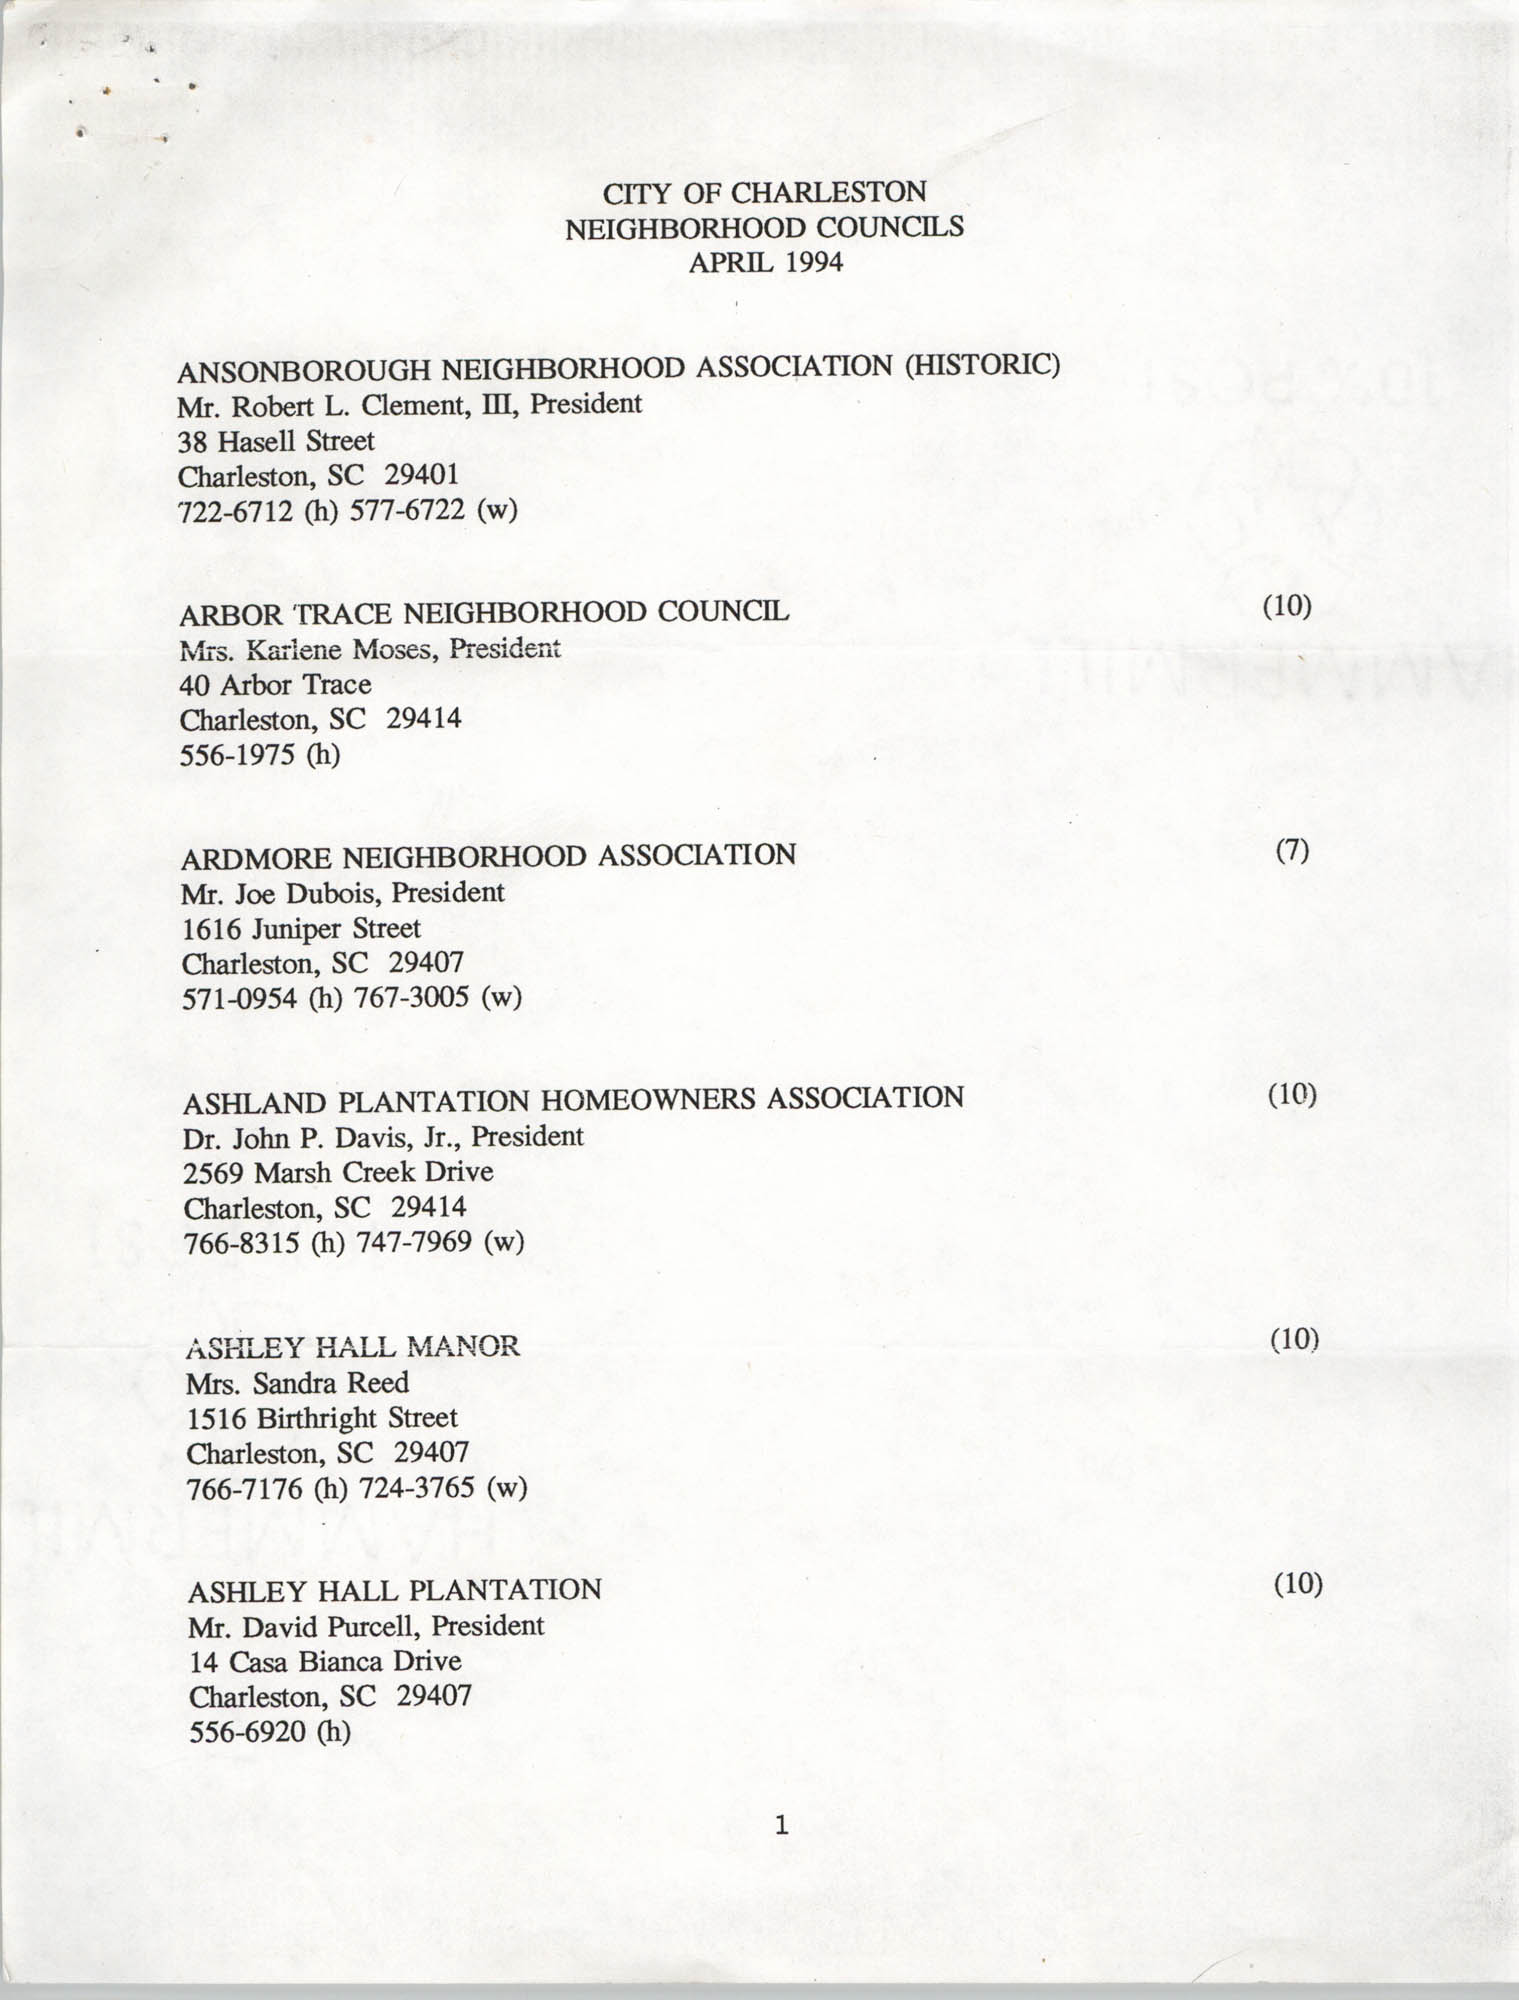 City of Charleston Neighborhood Councils, April 1994